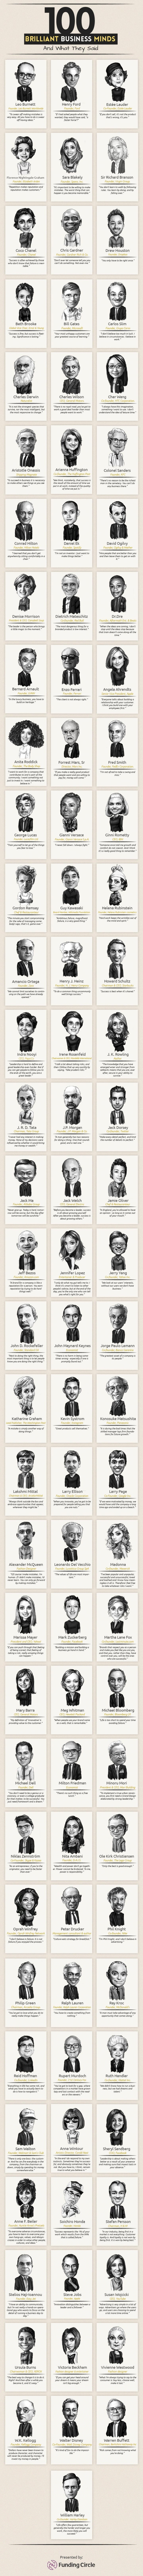 The 100 Best Quotes from 100 Brilliant Business Minds